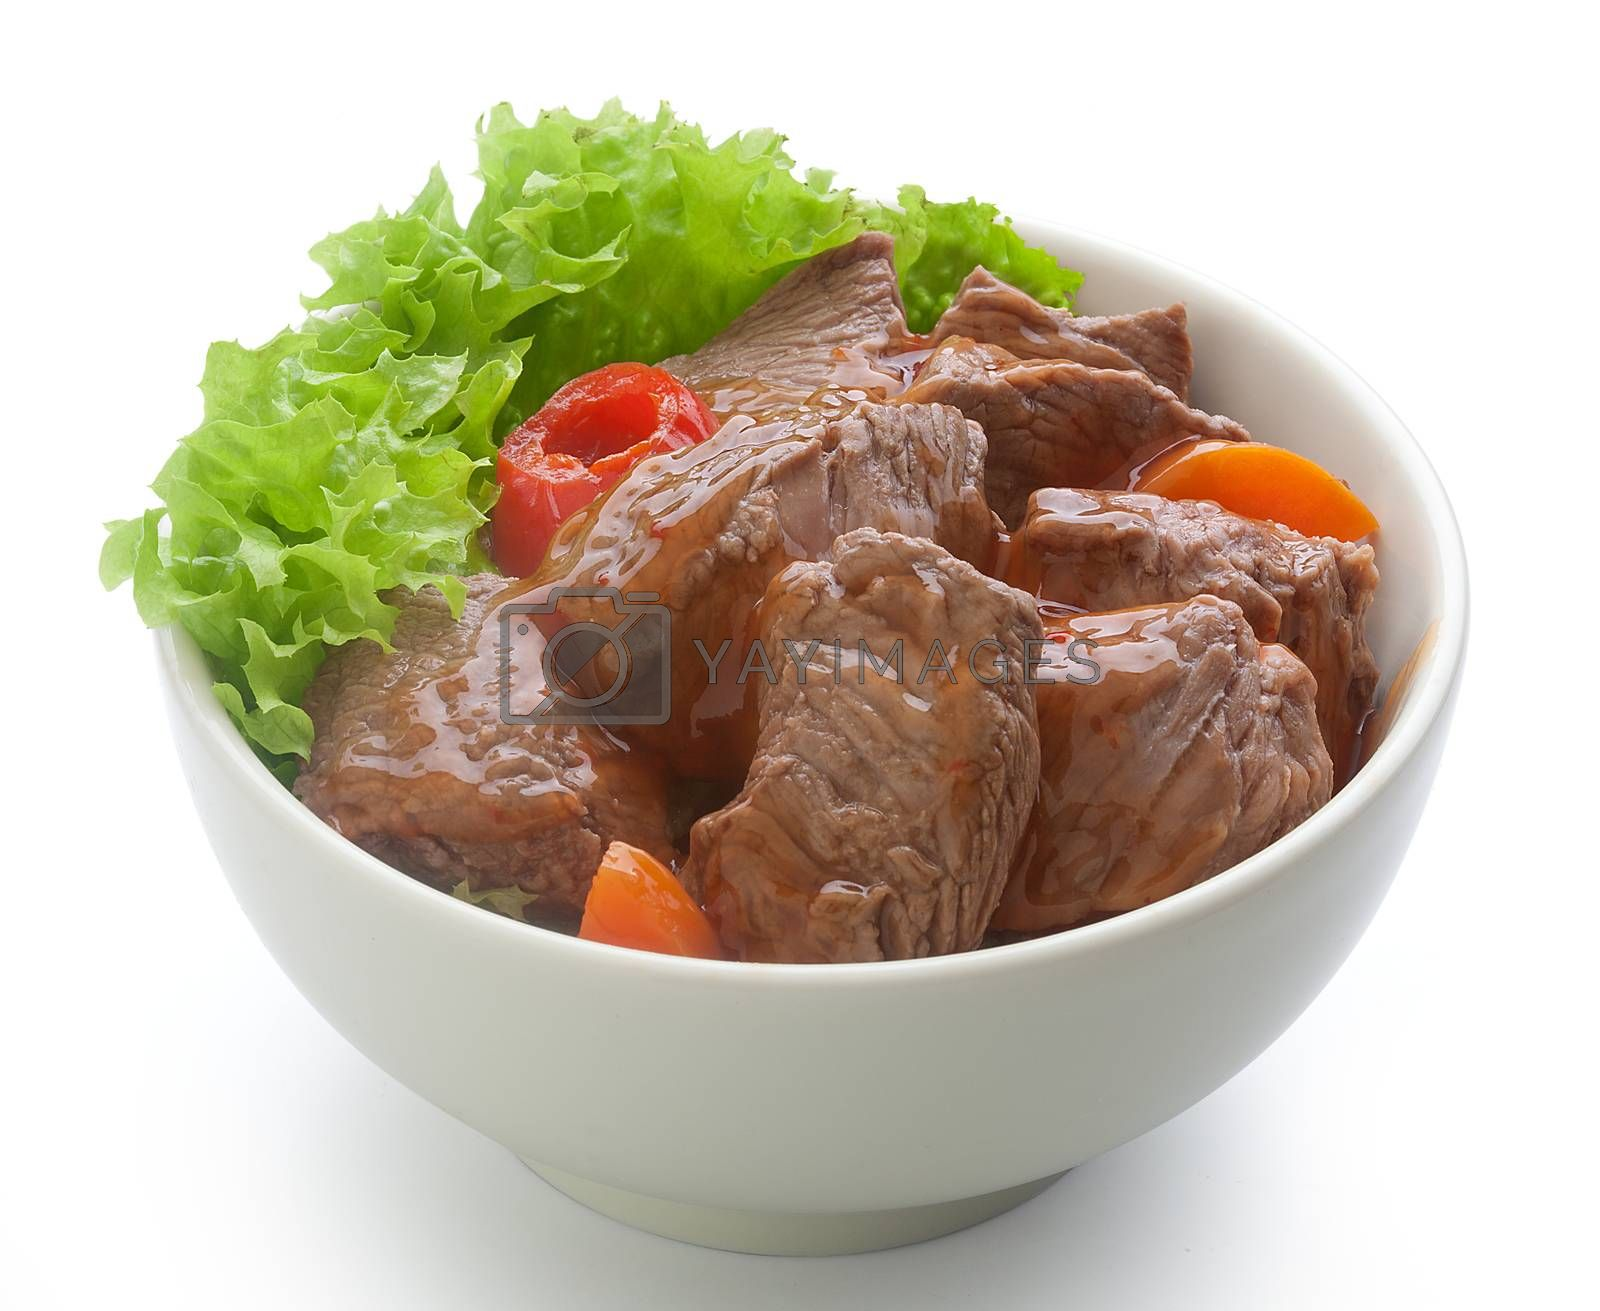 Royalty free image of Beef goulash with lettuce in the bowl by Angorius